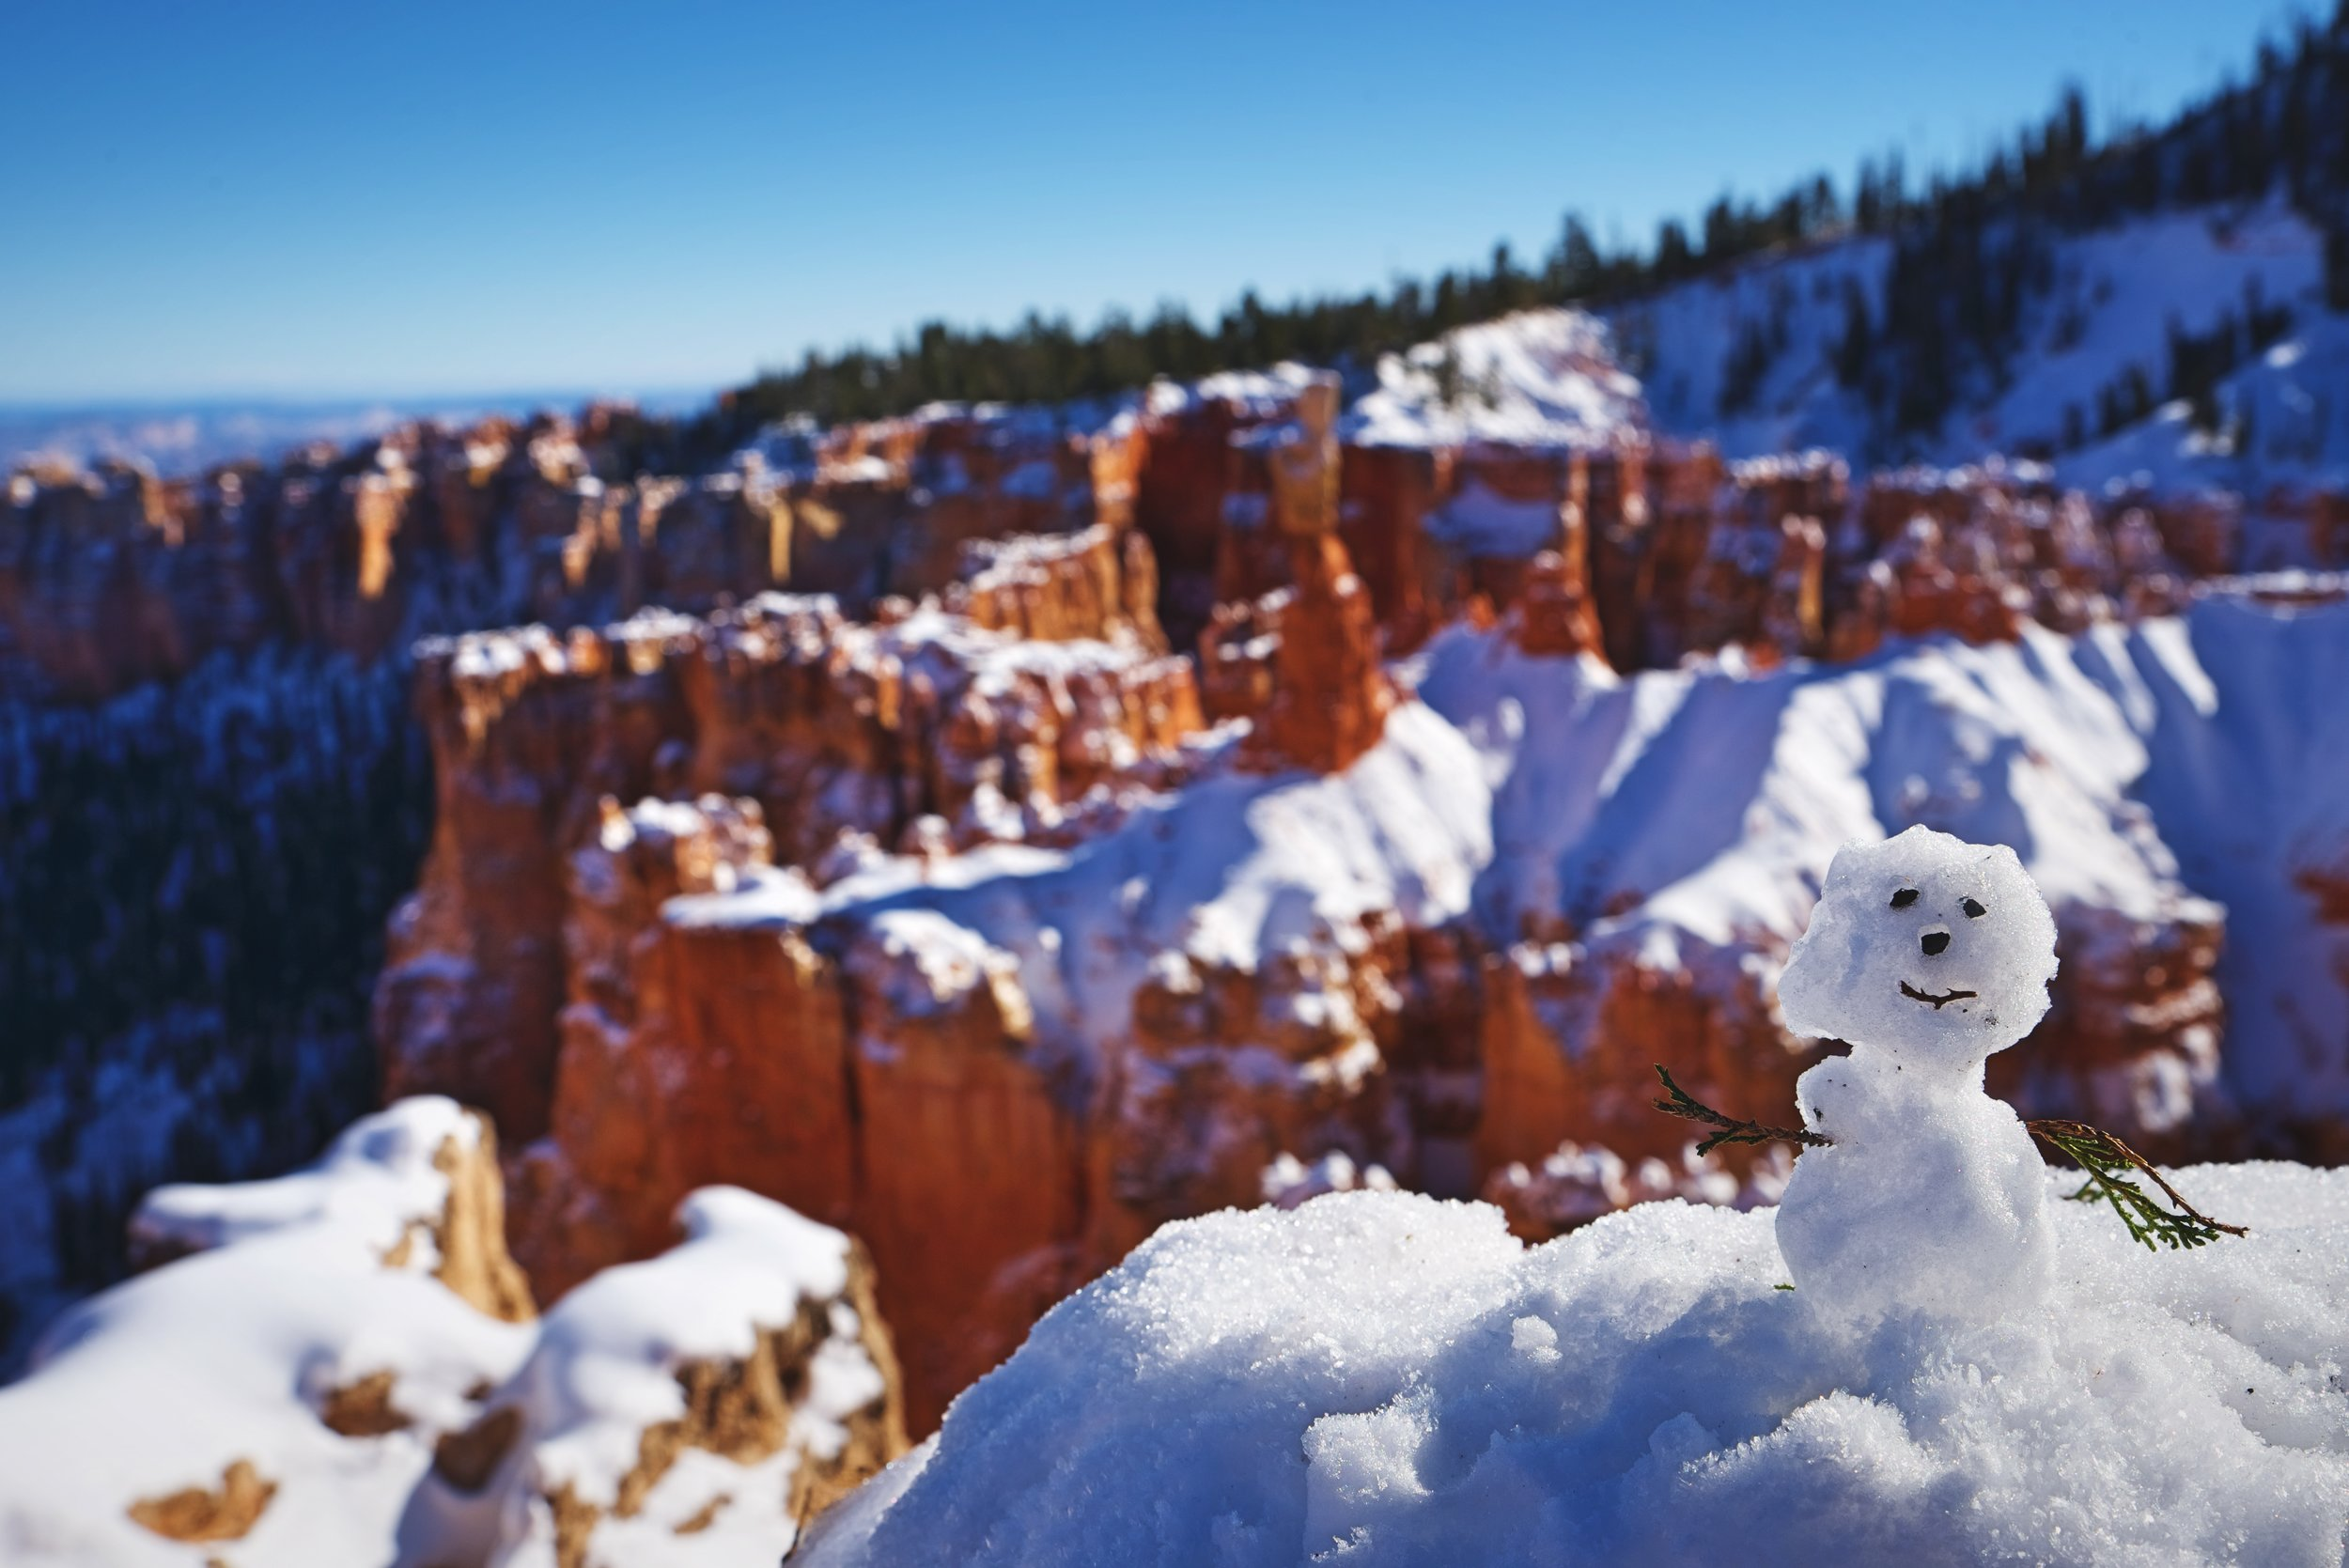 We noticed this cute little snowman sitting on the ledge of Agua Canyon. Winter is a wonderful time to visit Bryce Canyon National Park.